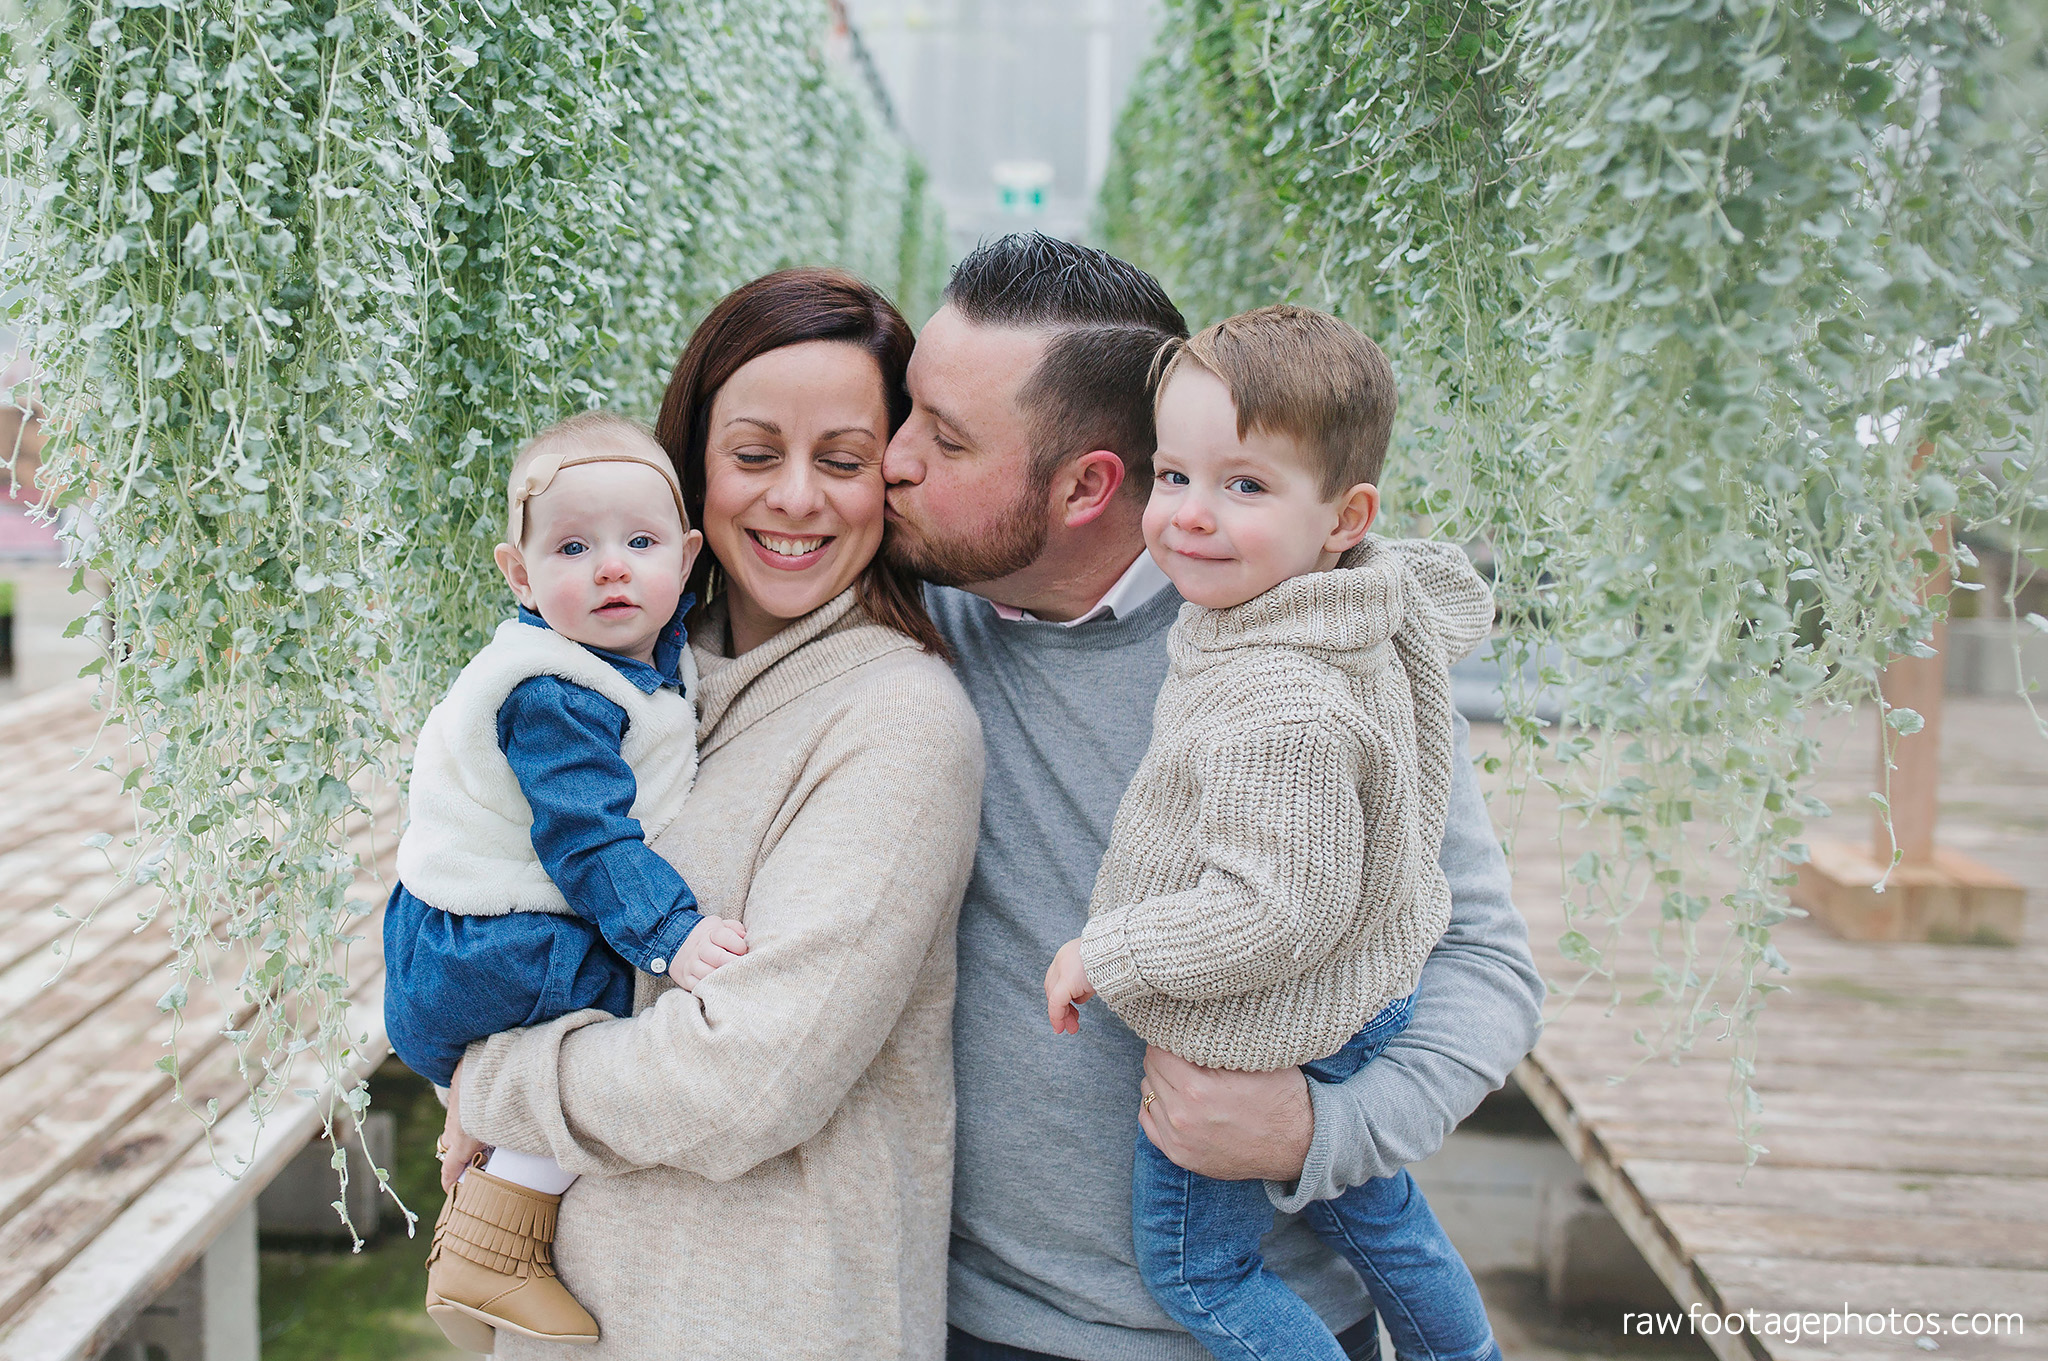 london_ontario_family_photographer-greenhouse_photos-winter_field_photos-raw_footage_photography007.jpg